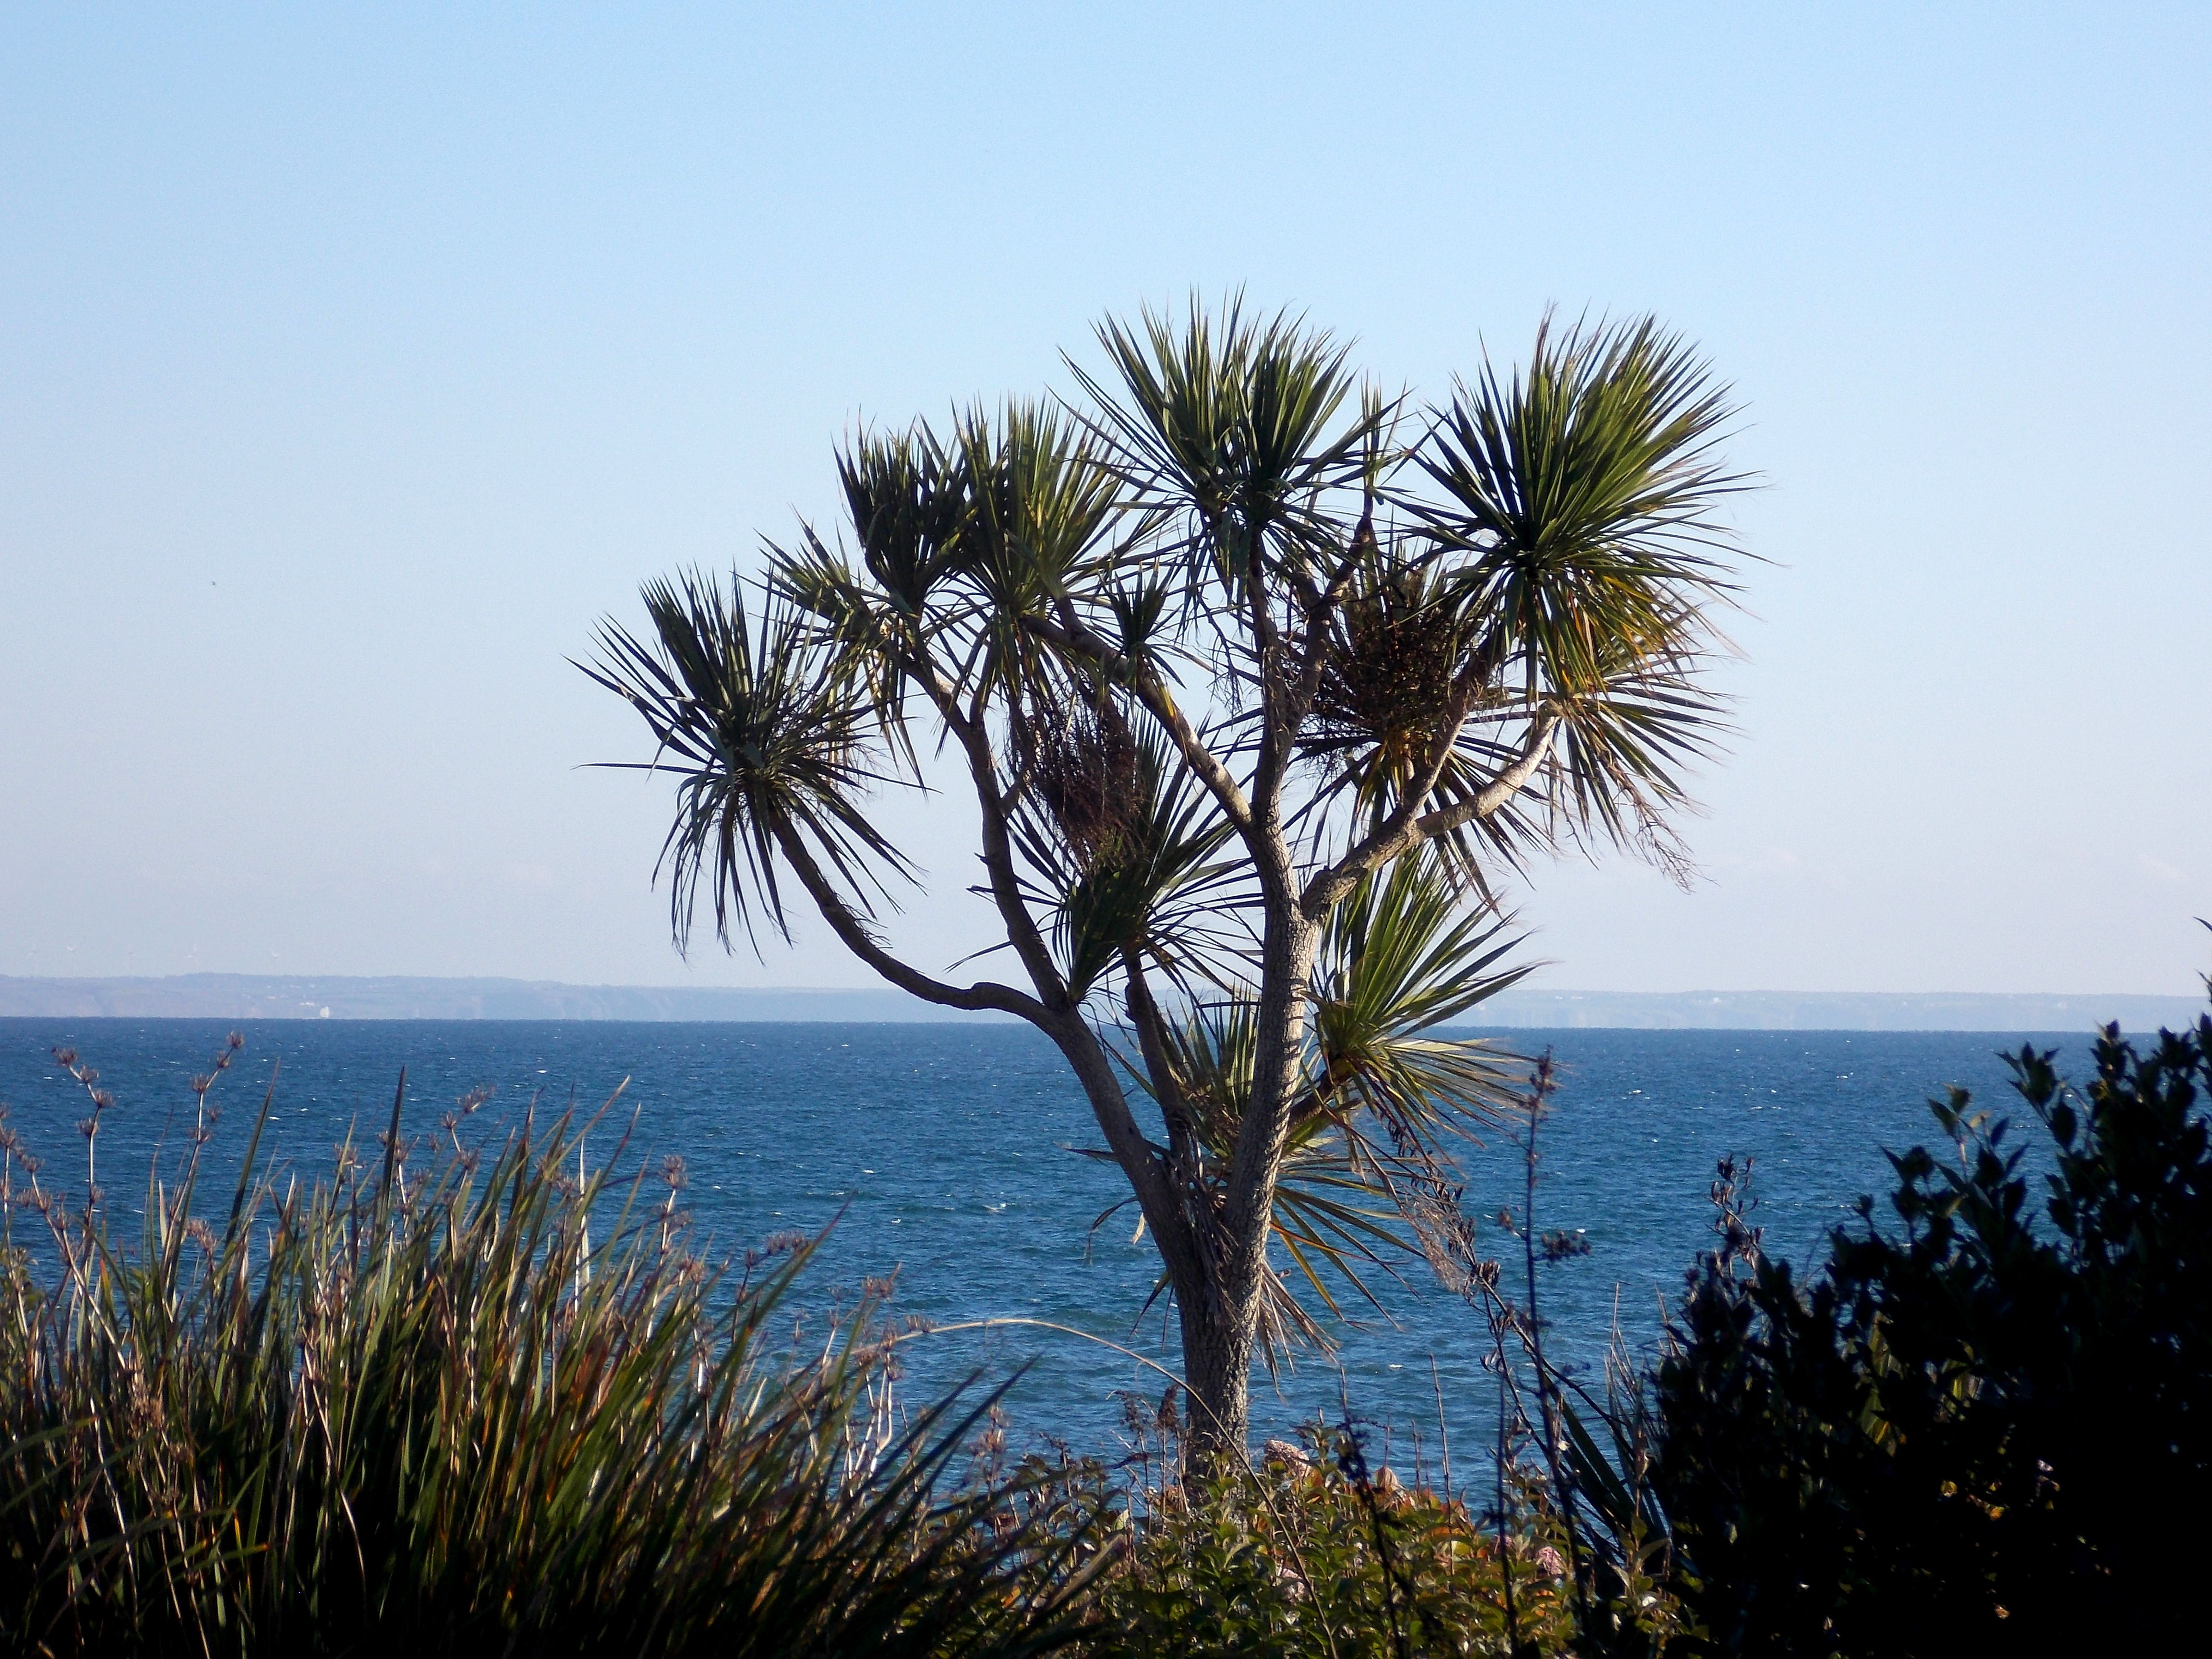 The collectors olivey place mylor bridge nr falmouth cornwall uk - Palm Tree With Mounts Bay In The Background Penzance